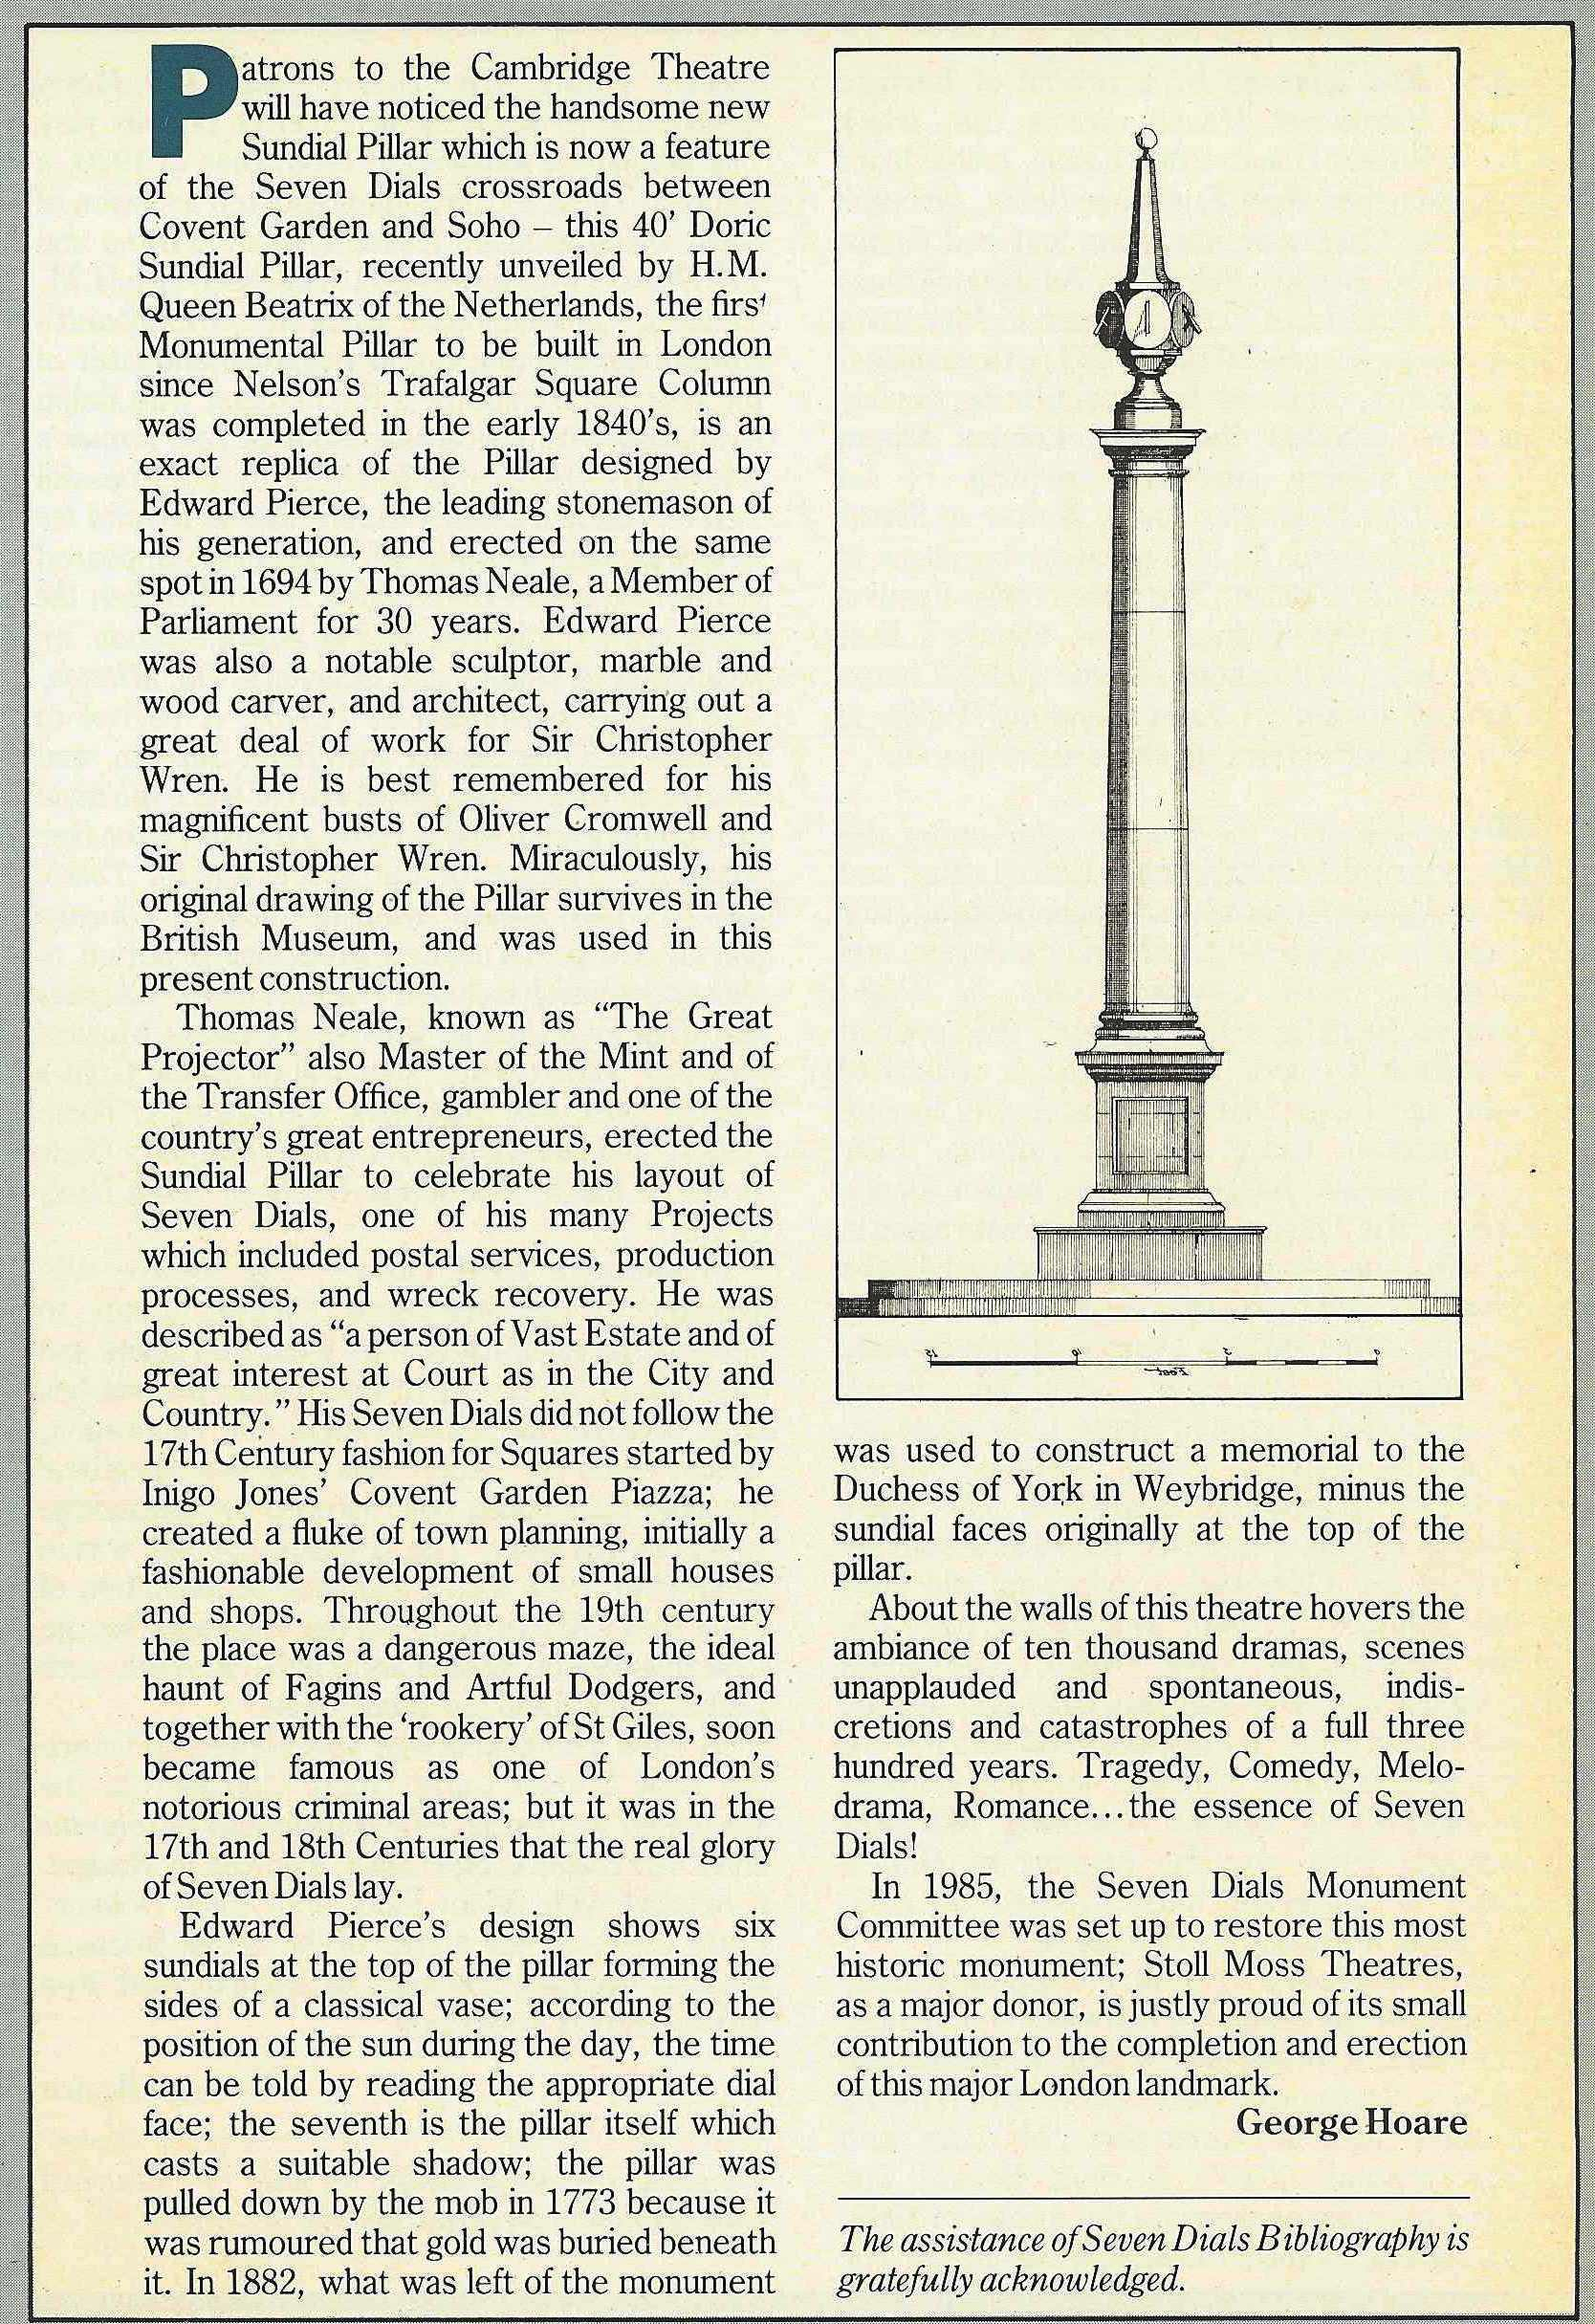 1 Oct. 1989 – Stoll Moss Theatres: A handsome new sundial pillar, symbol of the essence of Seven Dials.